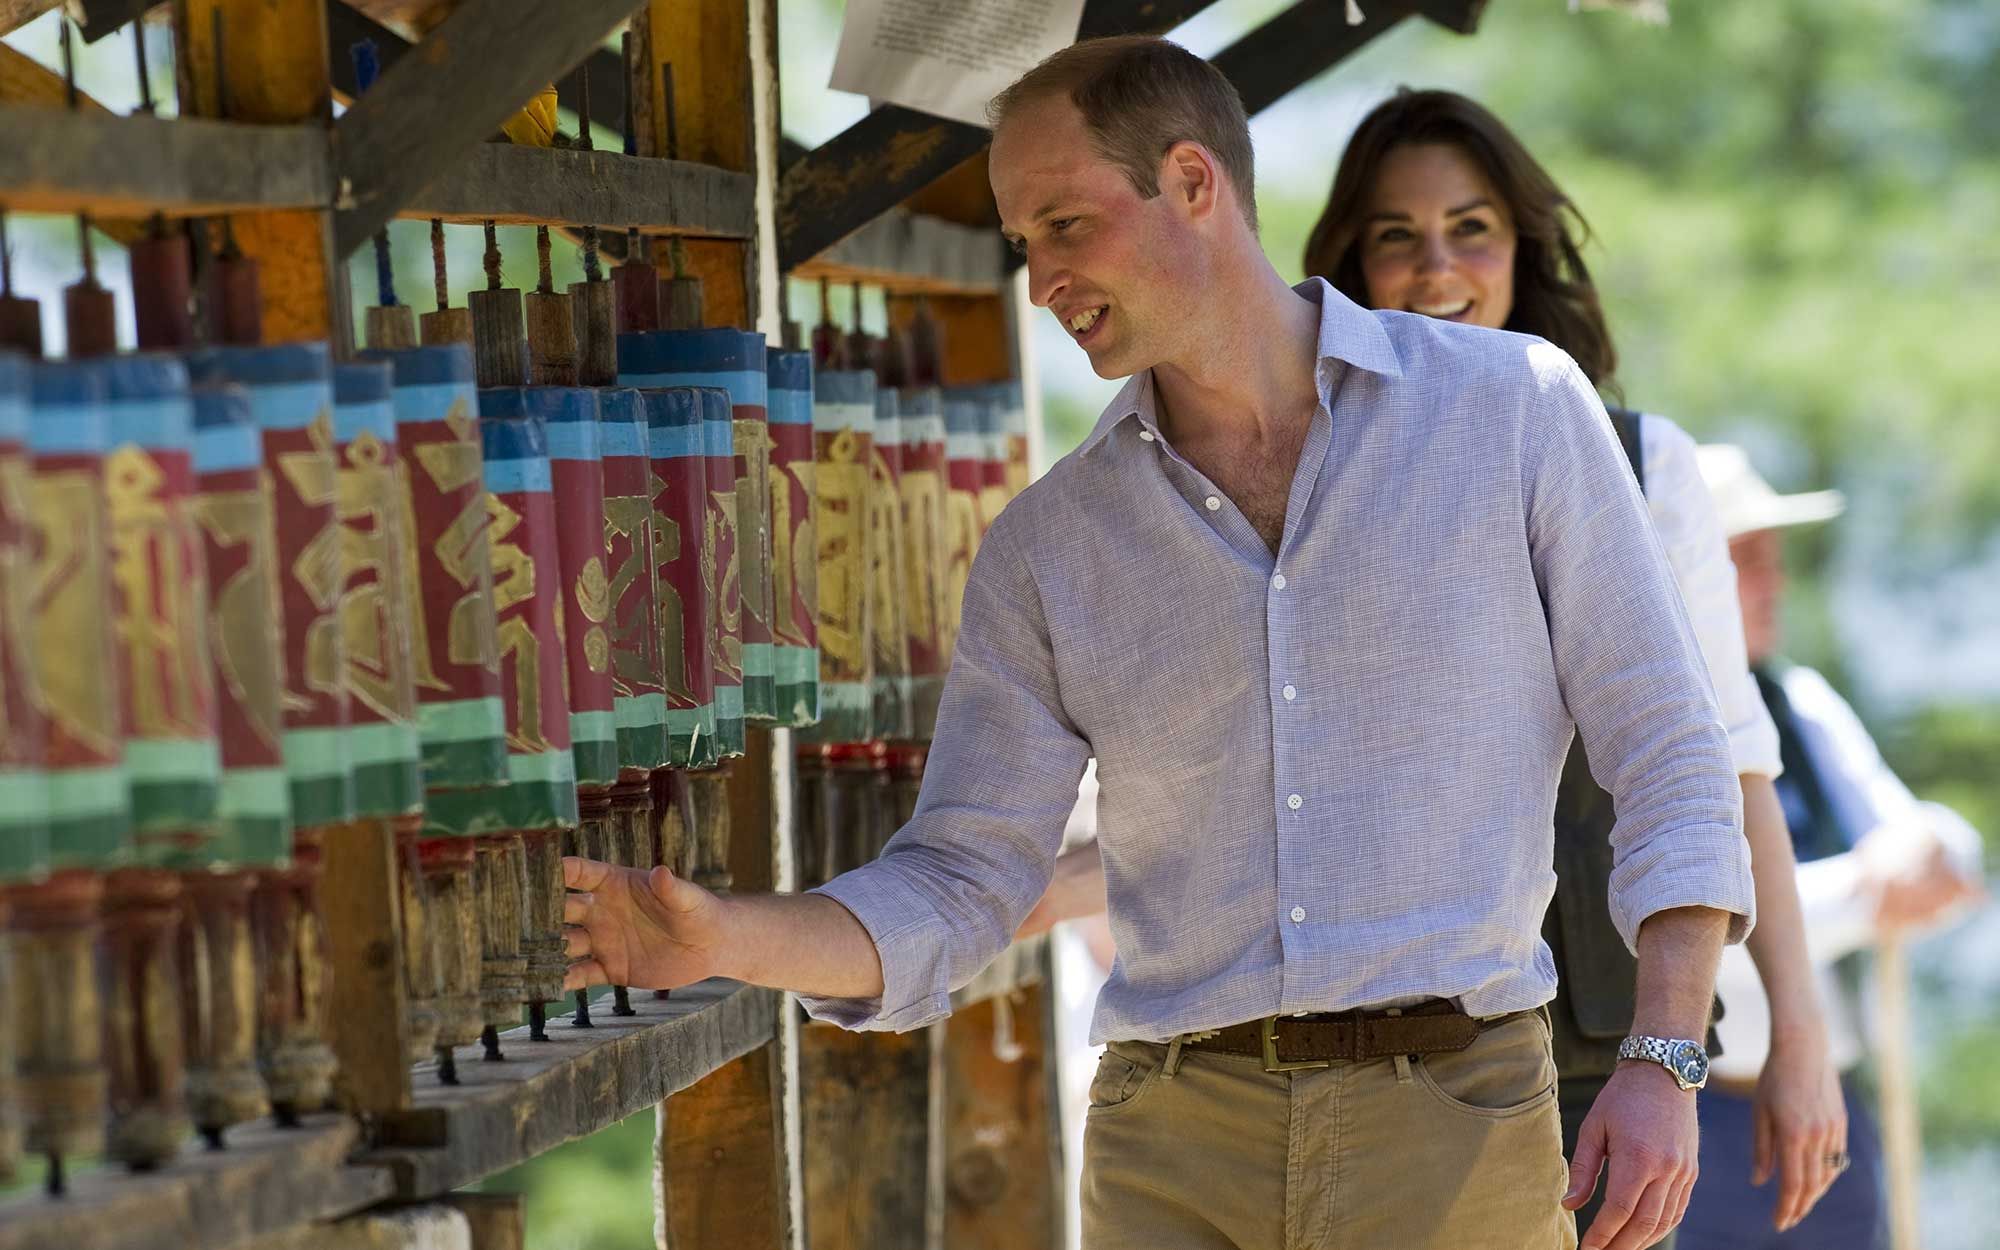 Prince William and Kate Middleton Embark on their Royal Tour of India and Bhutan: Spinning Prayer Wheels